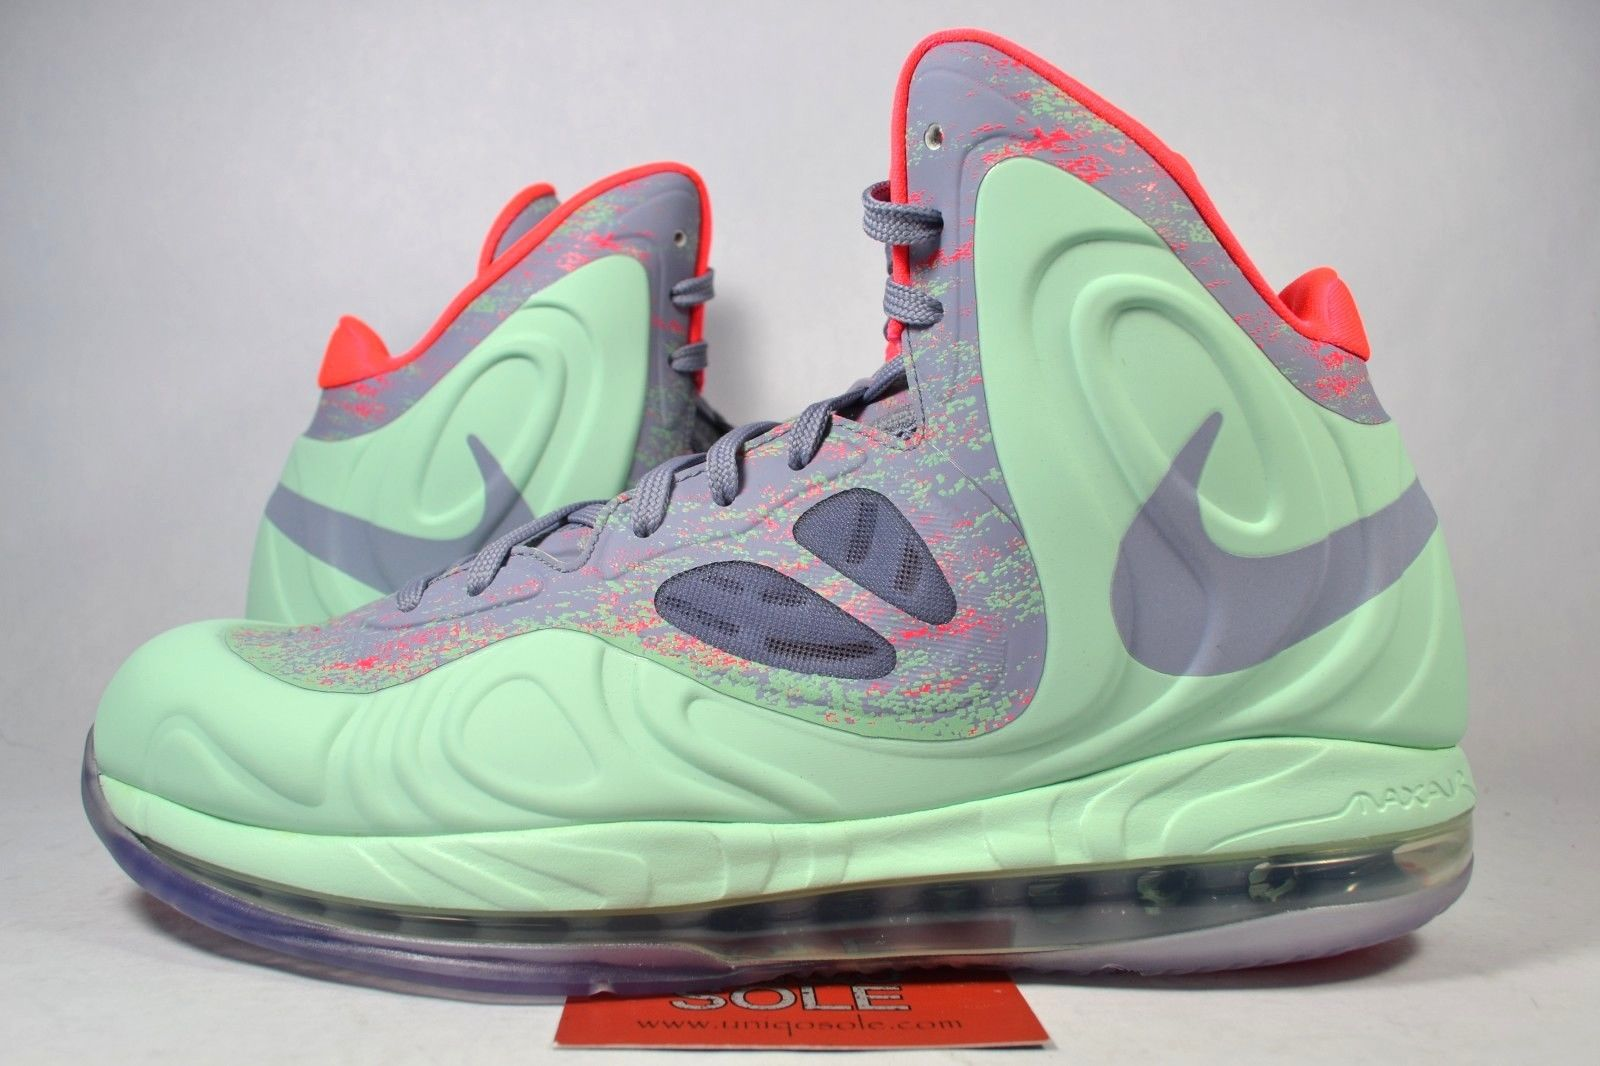 c5cee9d5fc7a 10 Deadstock Christmas Sneakers You Can Grab on eBay Right Now ...